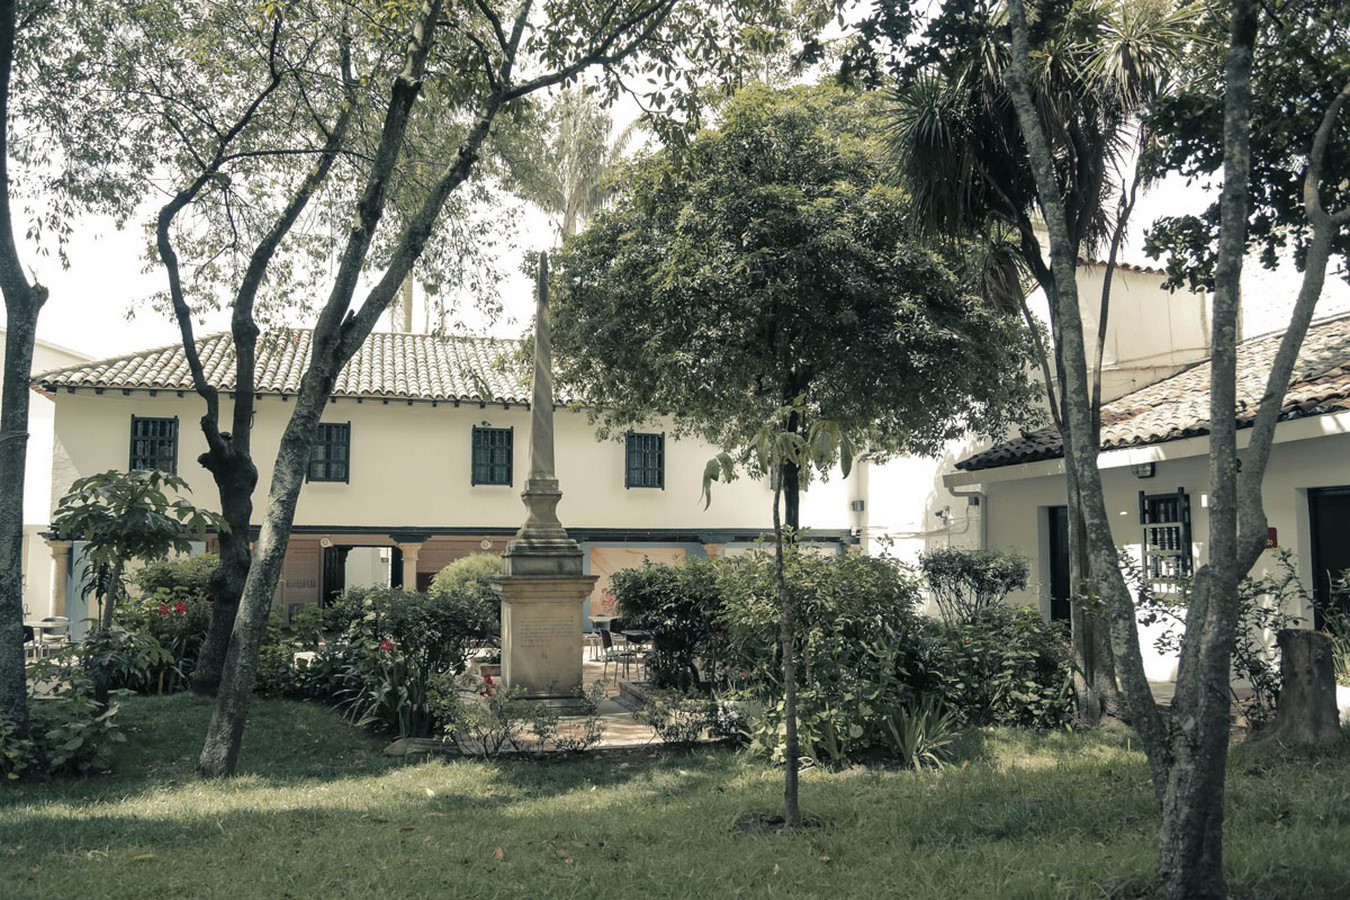 The Story of a House: Ten Houses in Bogotá - Sheet3